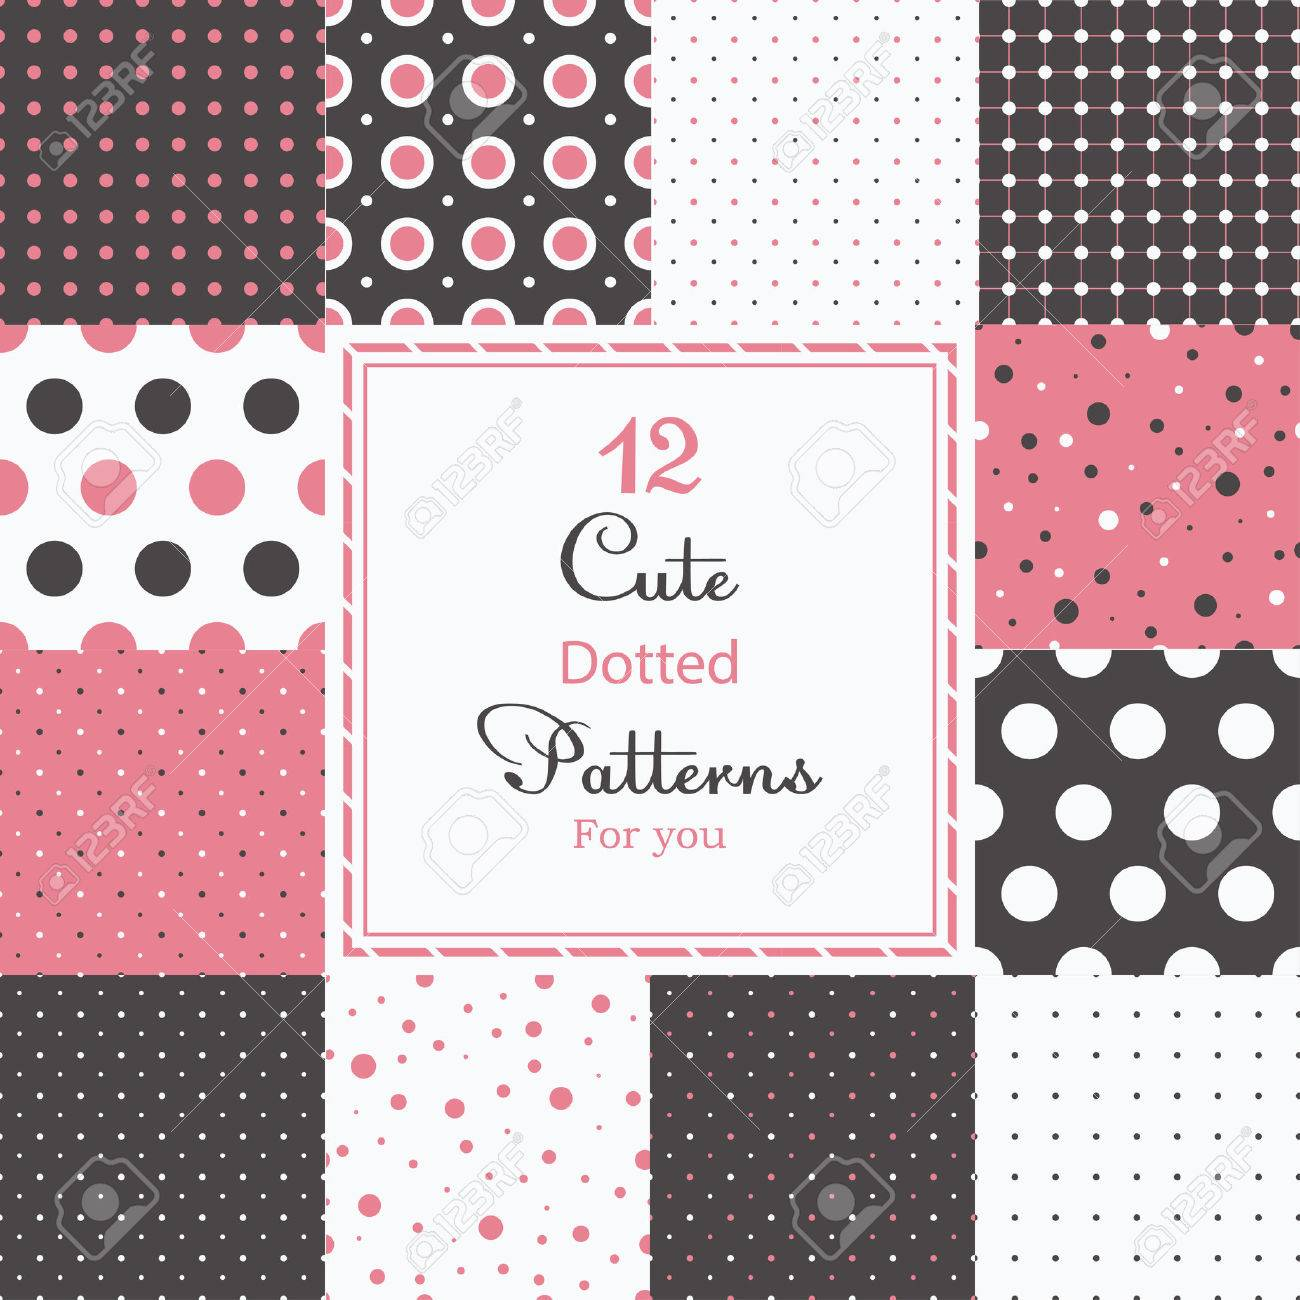 12 Cute different dotted vector seamless patterns  tiling   Polka dots set  Black, white and pink color Stock Vector - 24972659